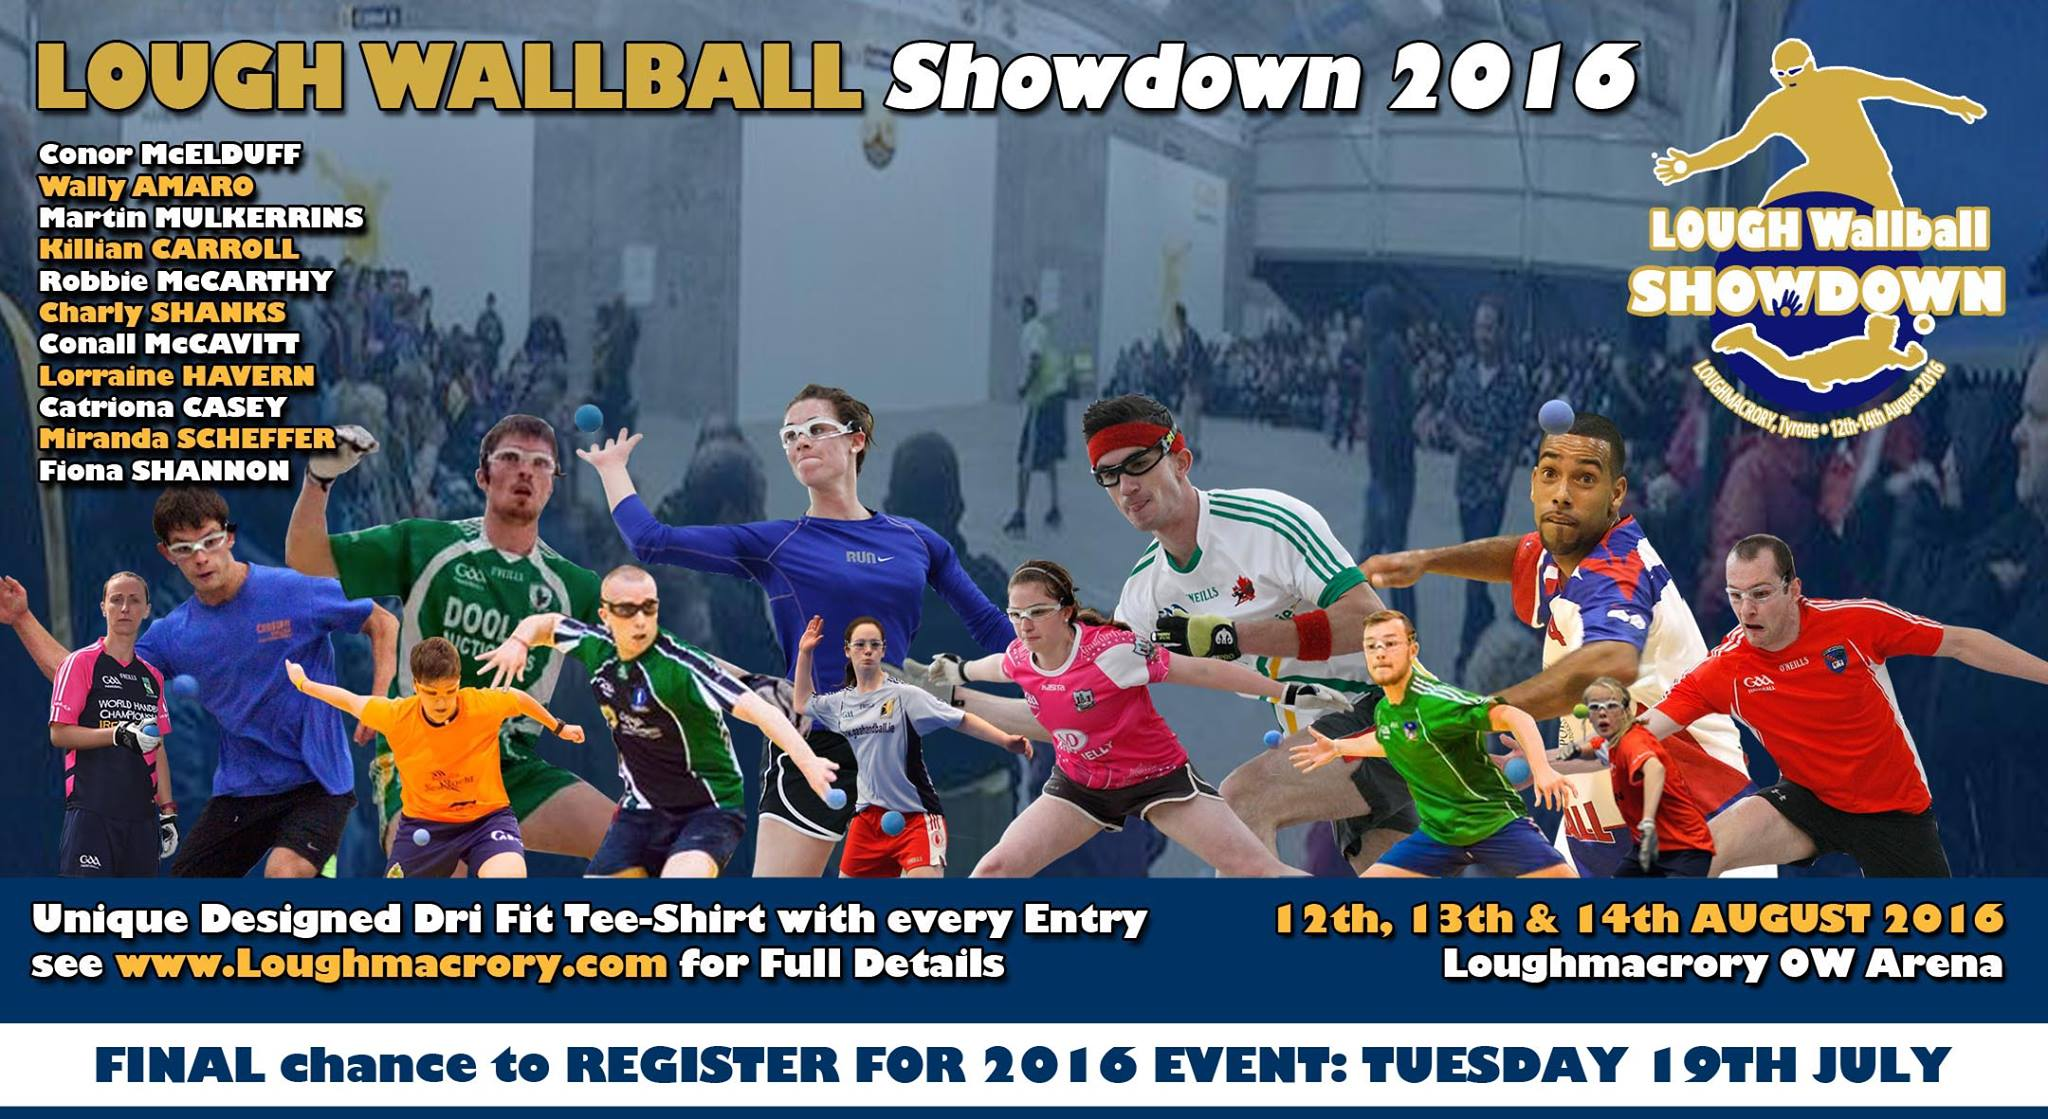 Loughmacrory WALLBALL Showdown 2016 – Final Entry Deadline